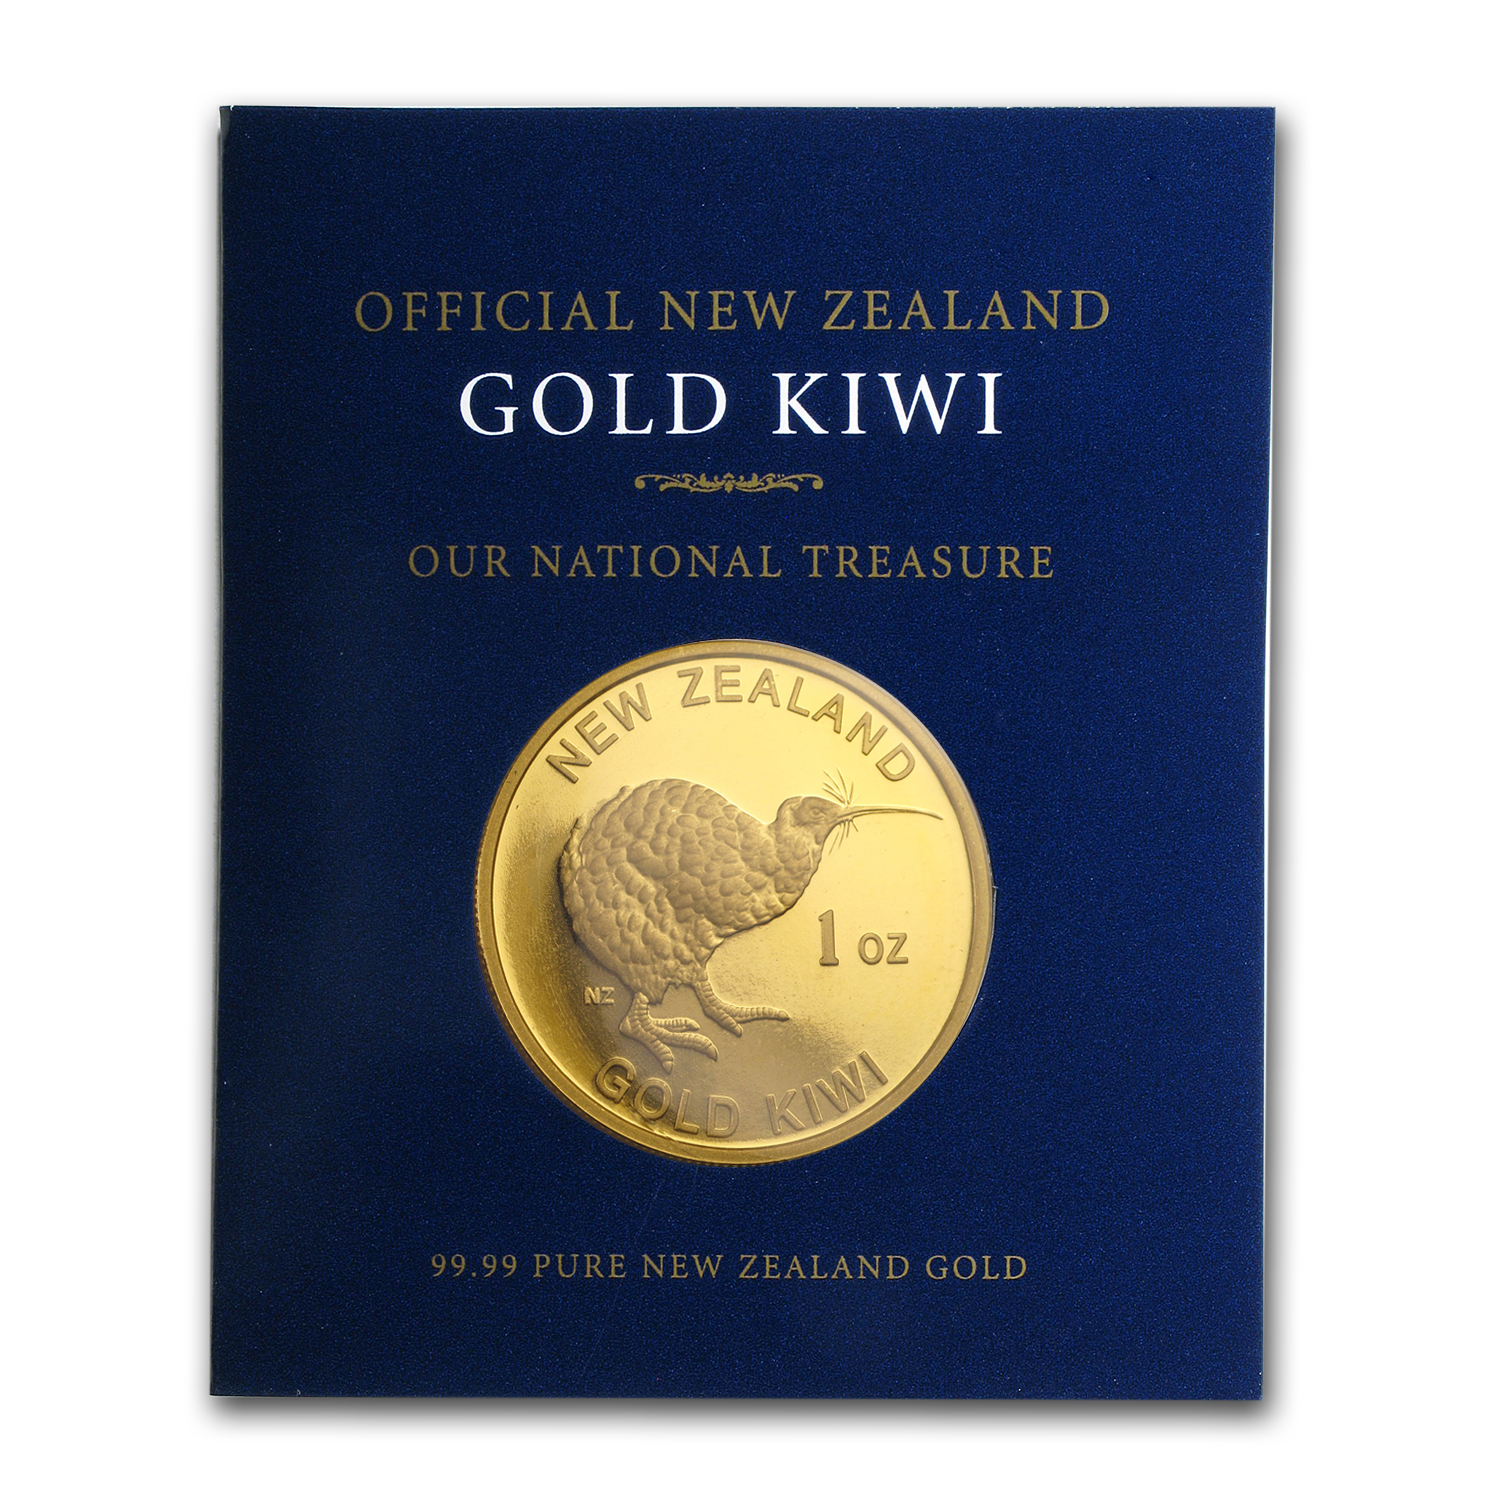 1 oz New Zealand Gold .9999 Kiwi (W/ COA)